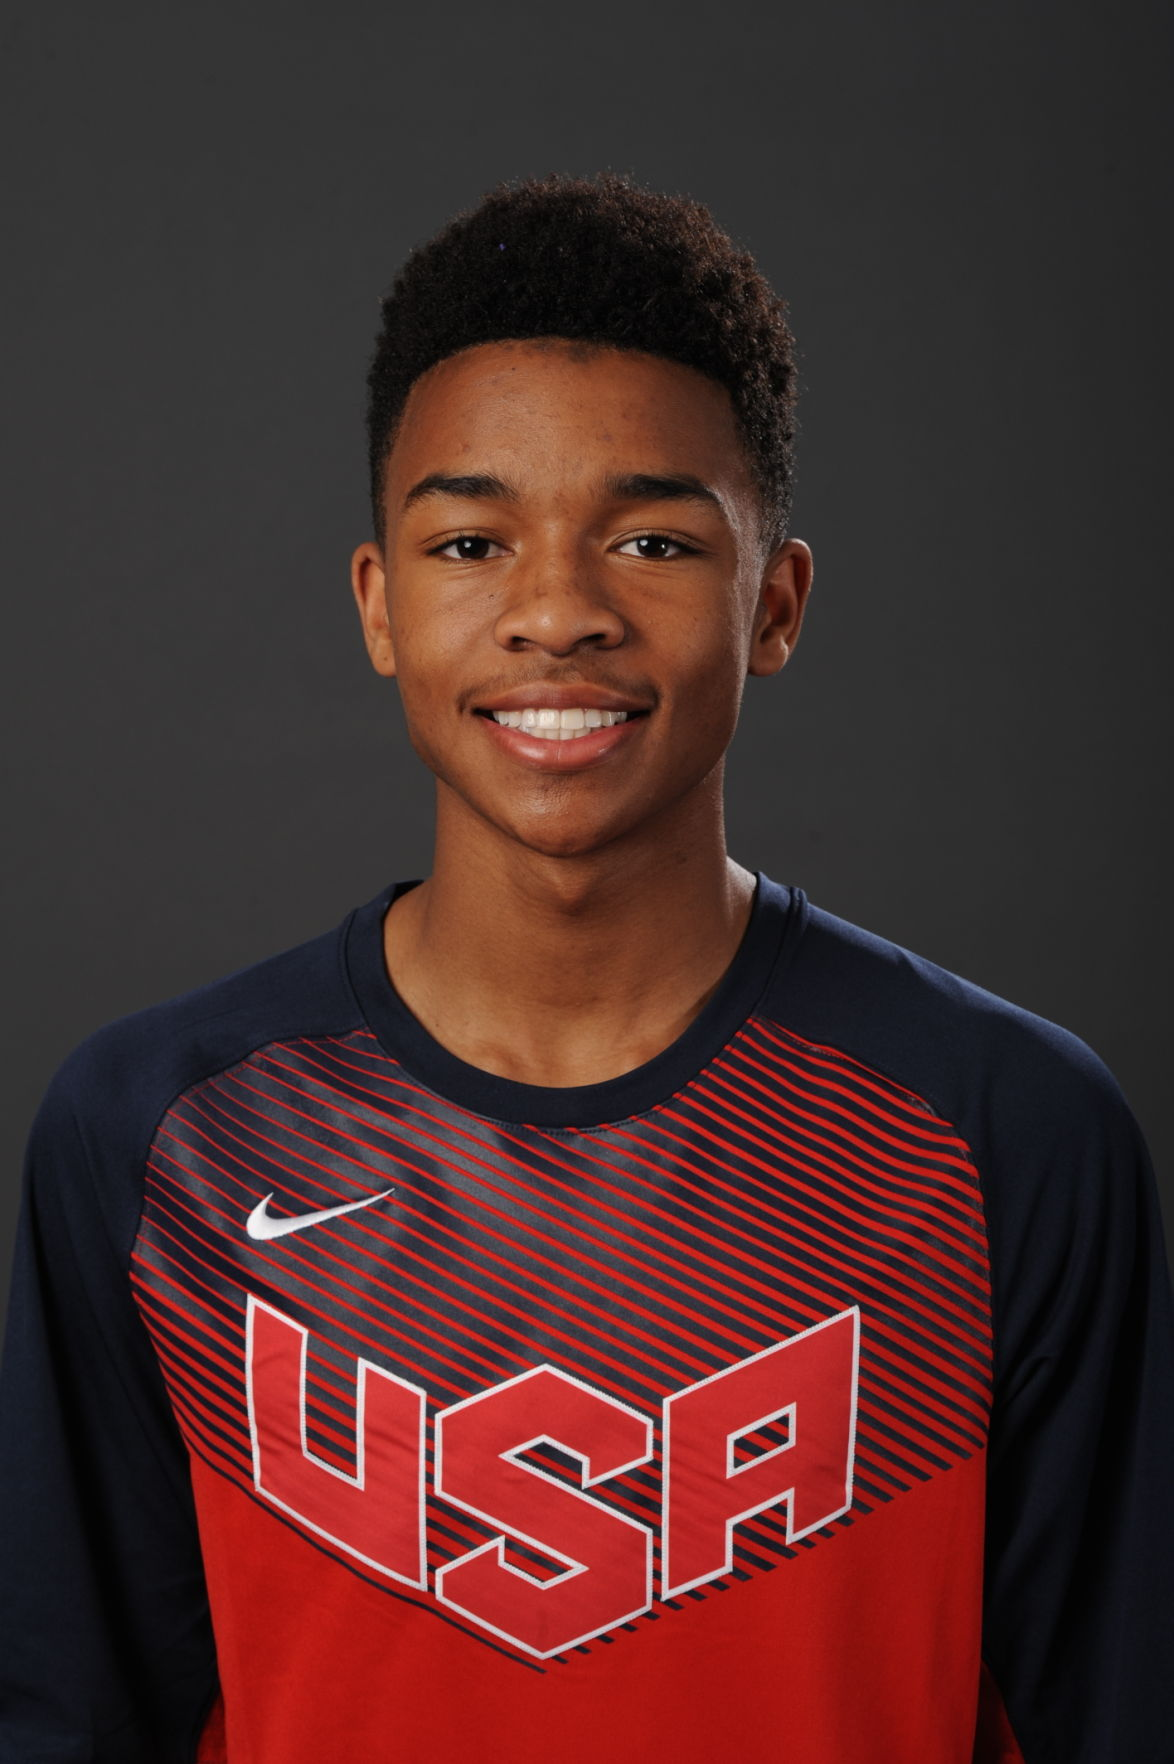 USA Basketball Men's U-16 Junior National Team